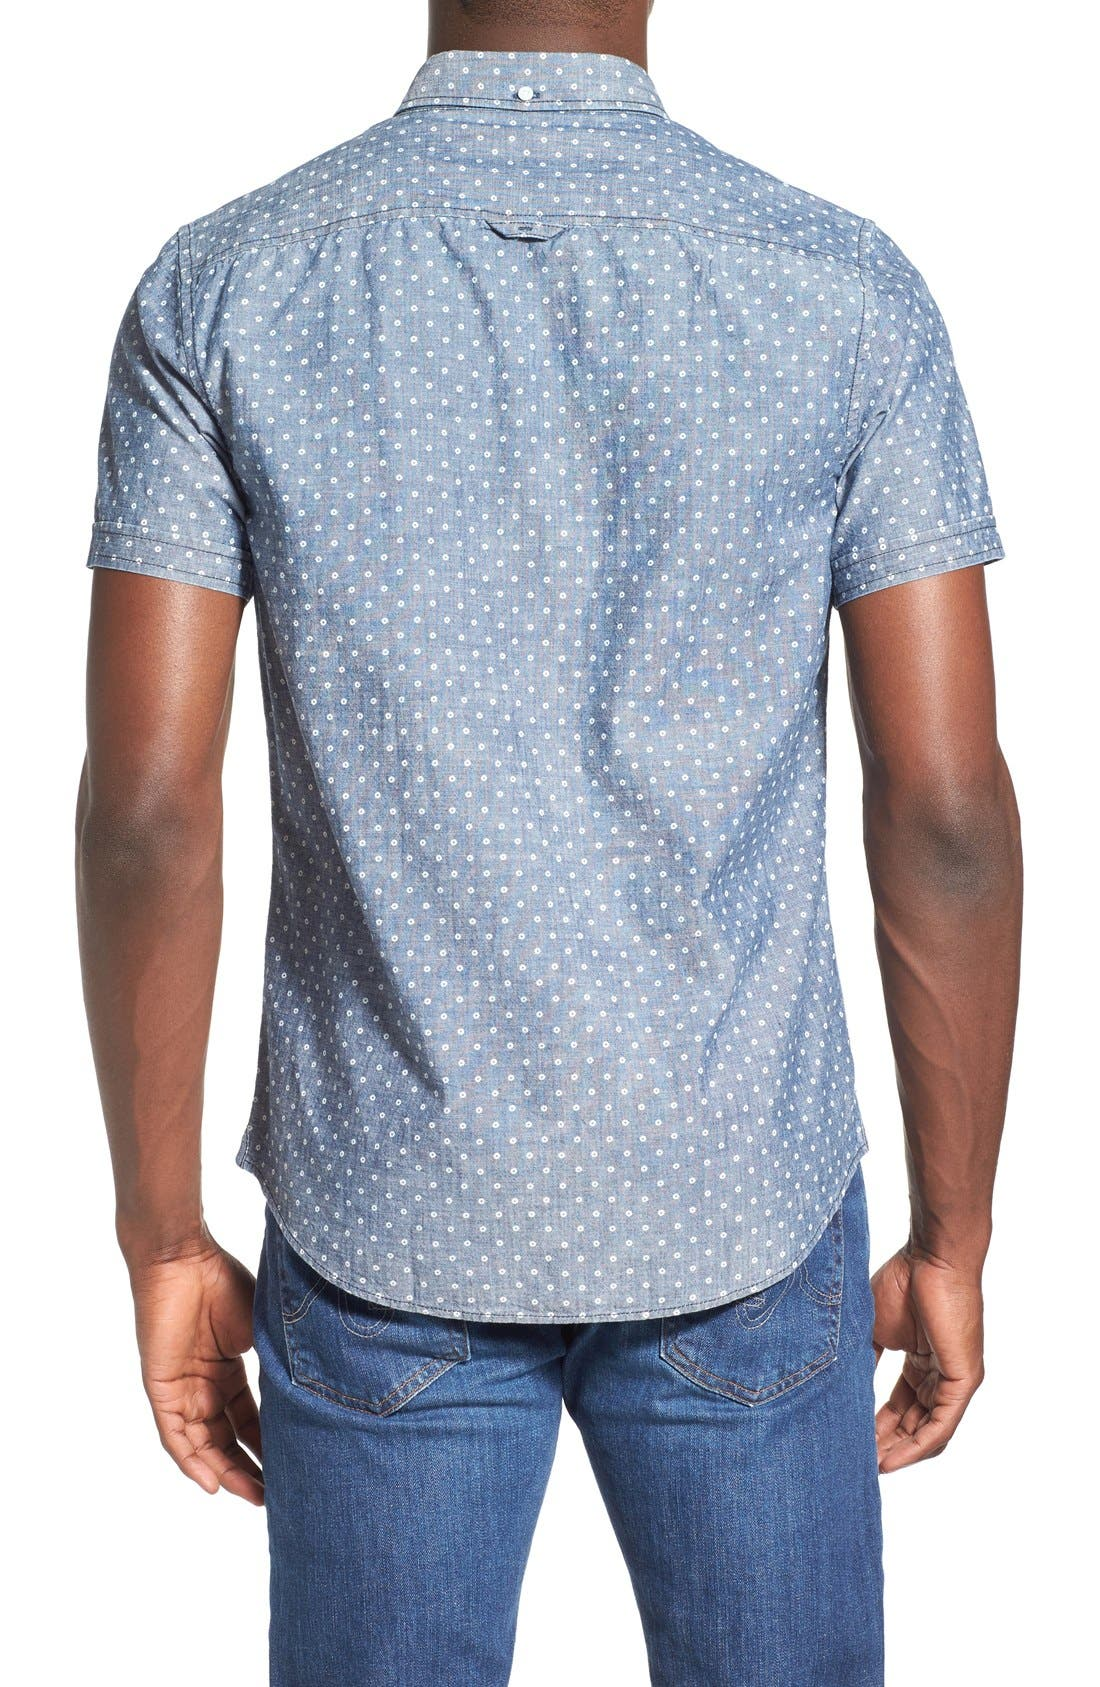 Alternate Image 2  - 1901 'Whitman' Trim Fit Short Sleeve Dot Print Chambray Shirt